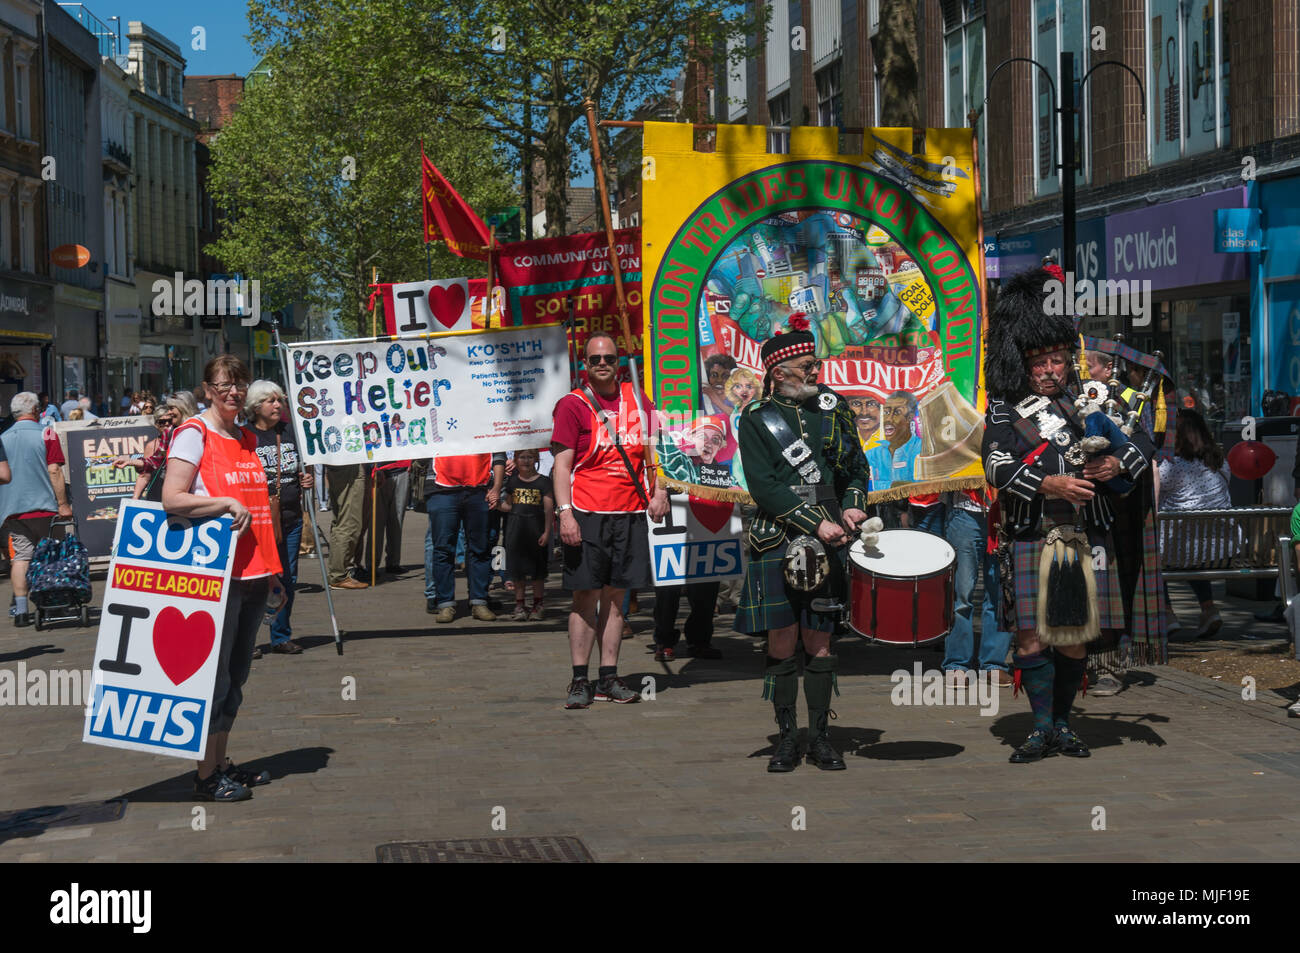 ondon, UK. 5th March 2018. A drummer and a piper lead trade unionists and other socialists on their march through Croydon town centre to a rally at Ruskin House in celebration of May Day, International Workers Day which is celebrated internationally on May 1st.  Unfortunately May Day is not a Bank Holiday in the UK. The marchers were lead through the main shopping street by a piper and drummer in full Scots dress, attracting the attention of shoppers and others on the busy street. I left the march before it reached Ruskin House where there was to be a rally with speakers including Ted Knight. Stock Photo